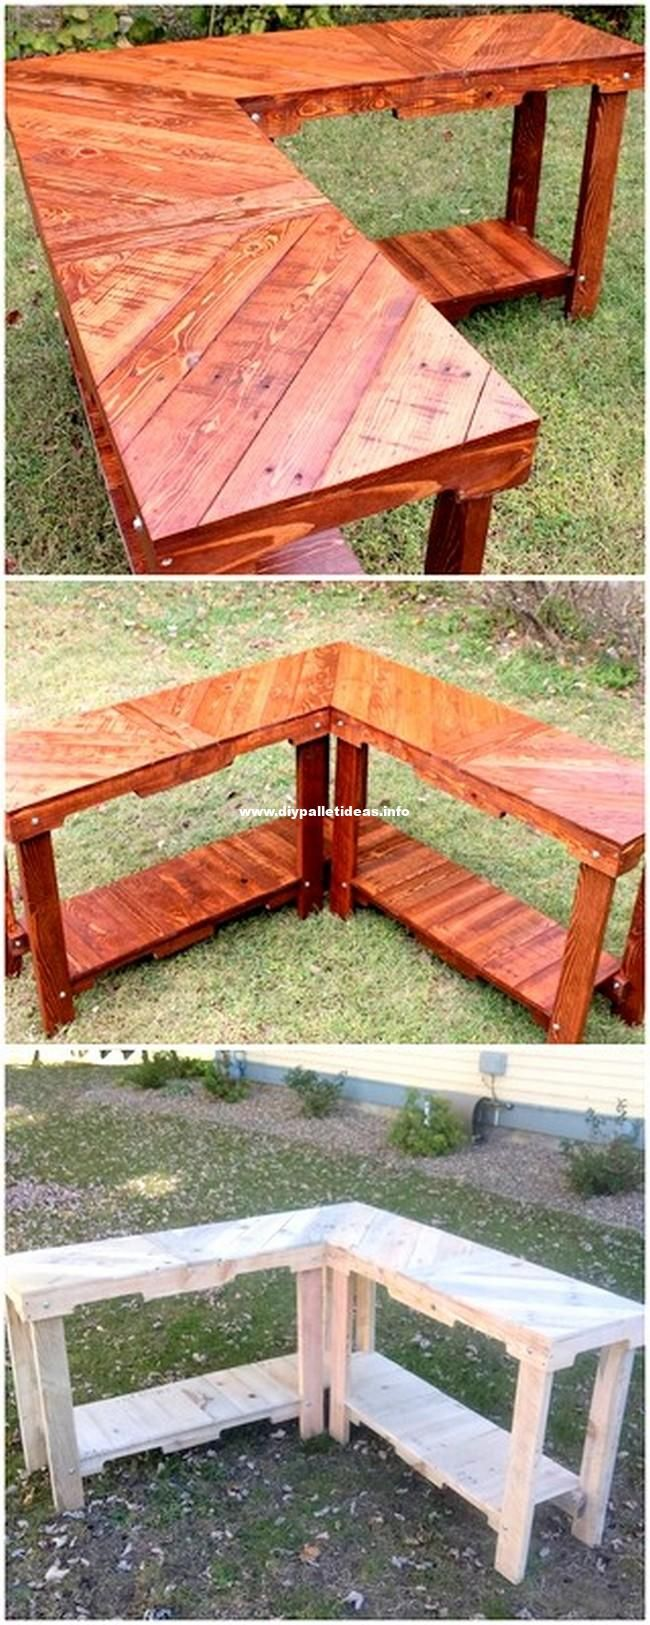 50 easiest projects designs of wooden pallet creations pallet pc rh pinterest com